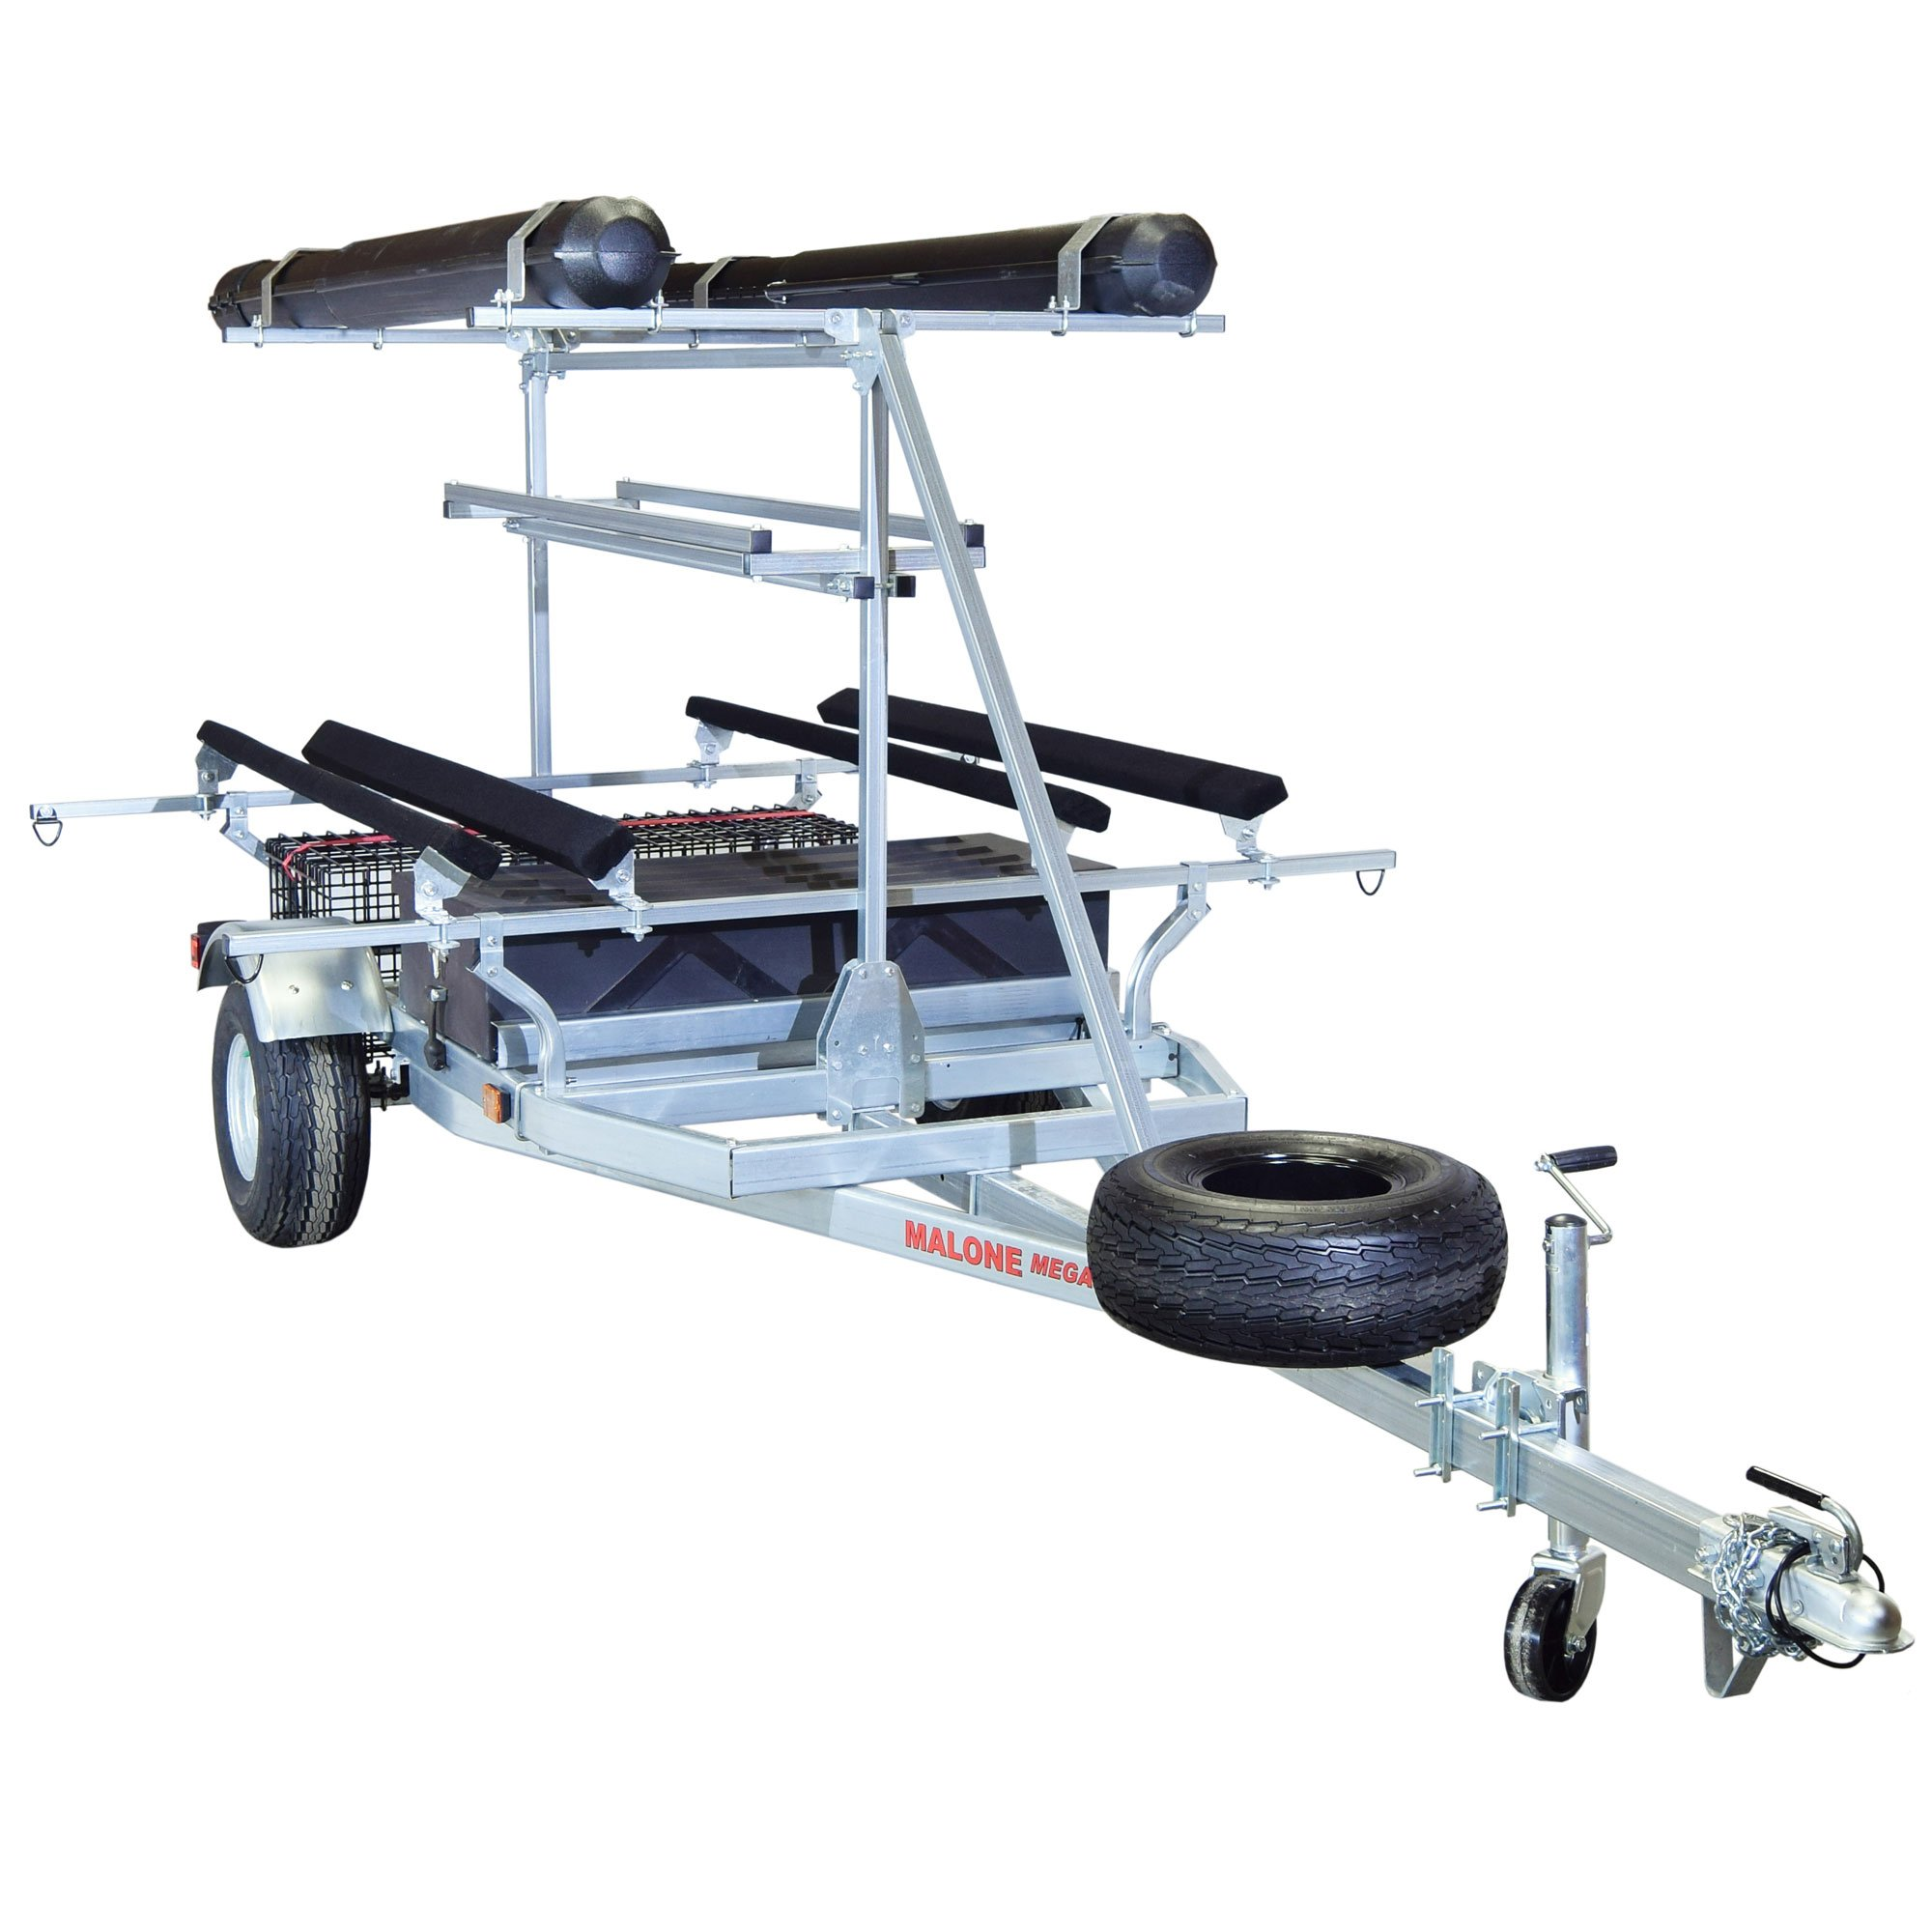 Malone Auto Racks 2 boat ultimate angler trailer package - Hobie PA by Malone